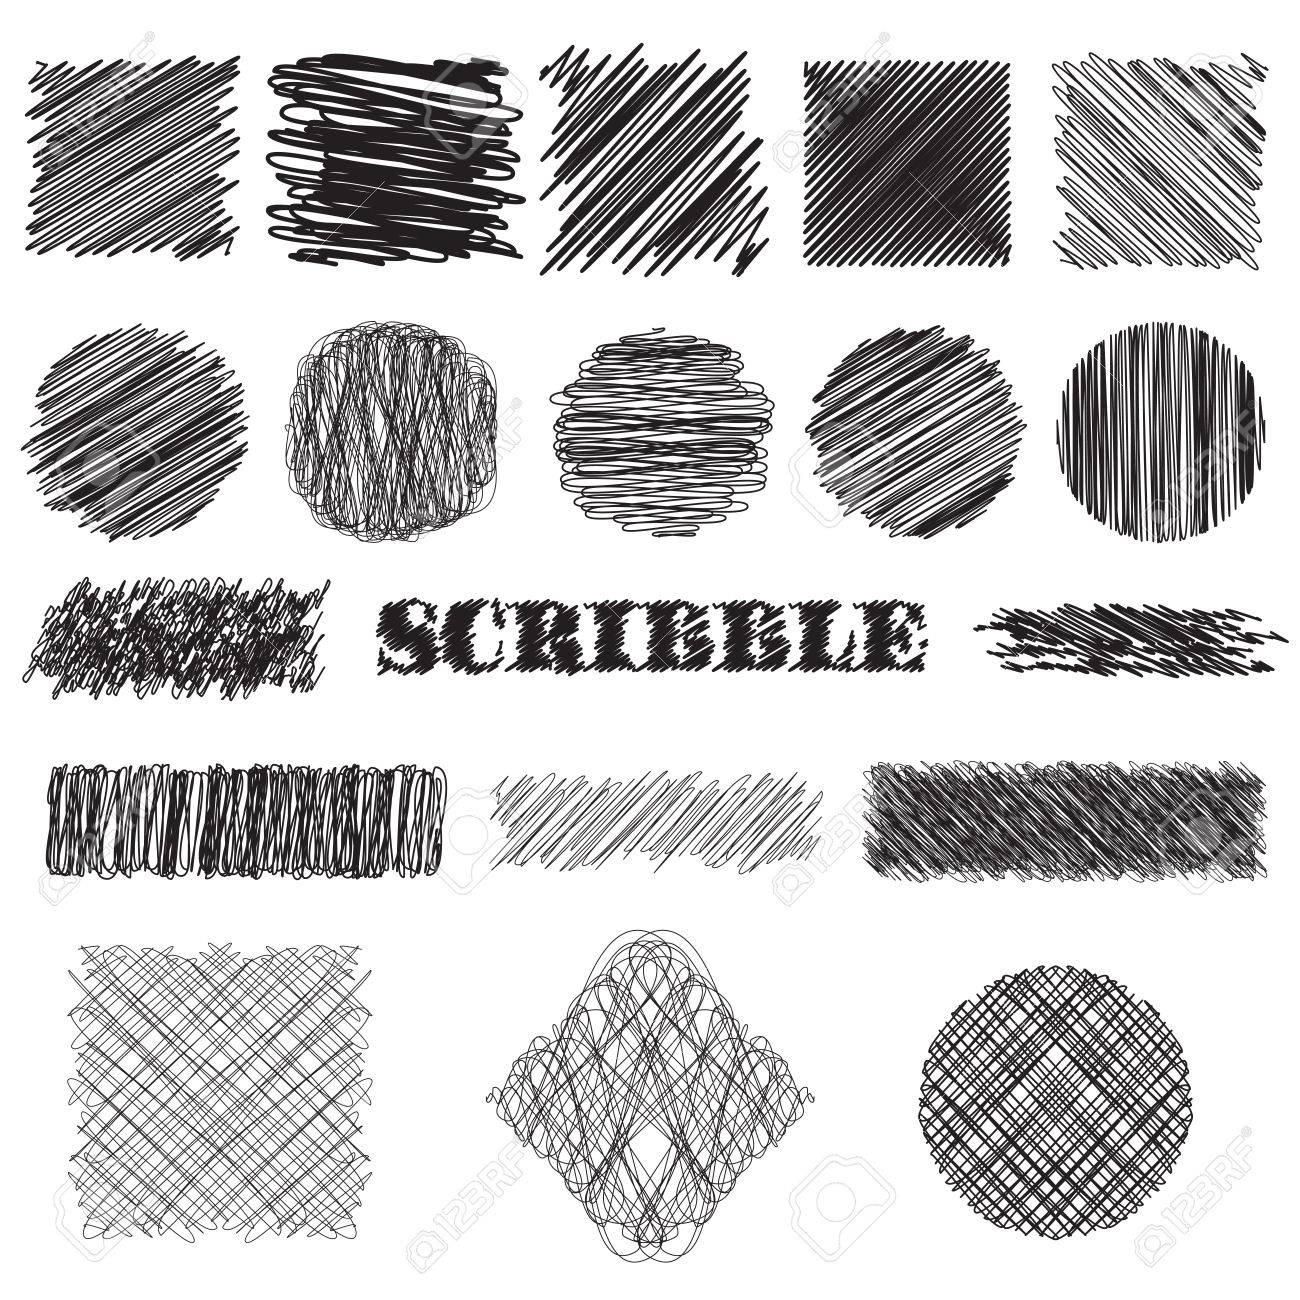 vector set of scribble brushes. Collection of ink lines, set of hand drawn textures, scribbles of pen, hatching, scratch - 43922180